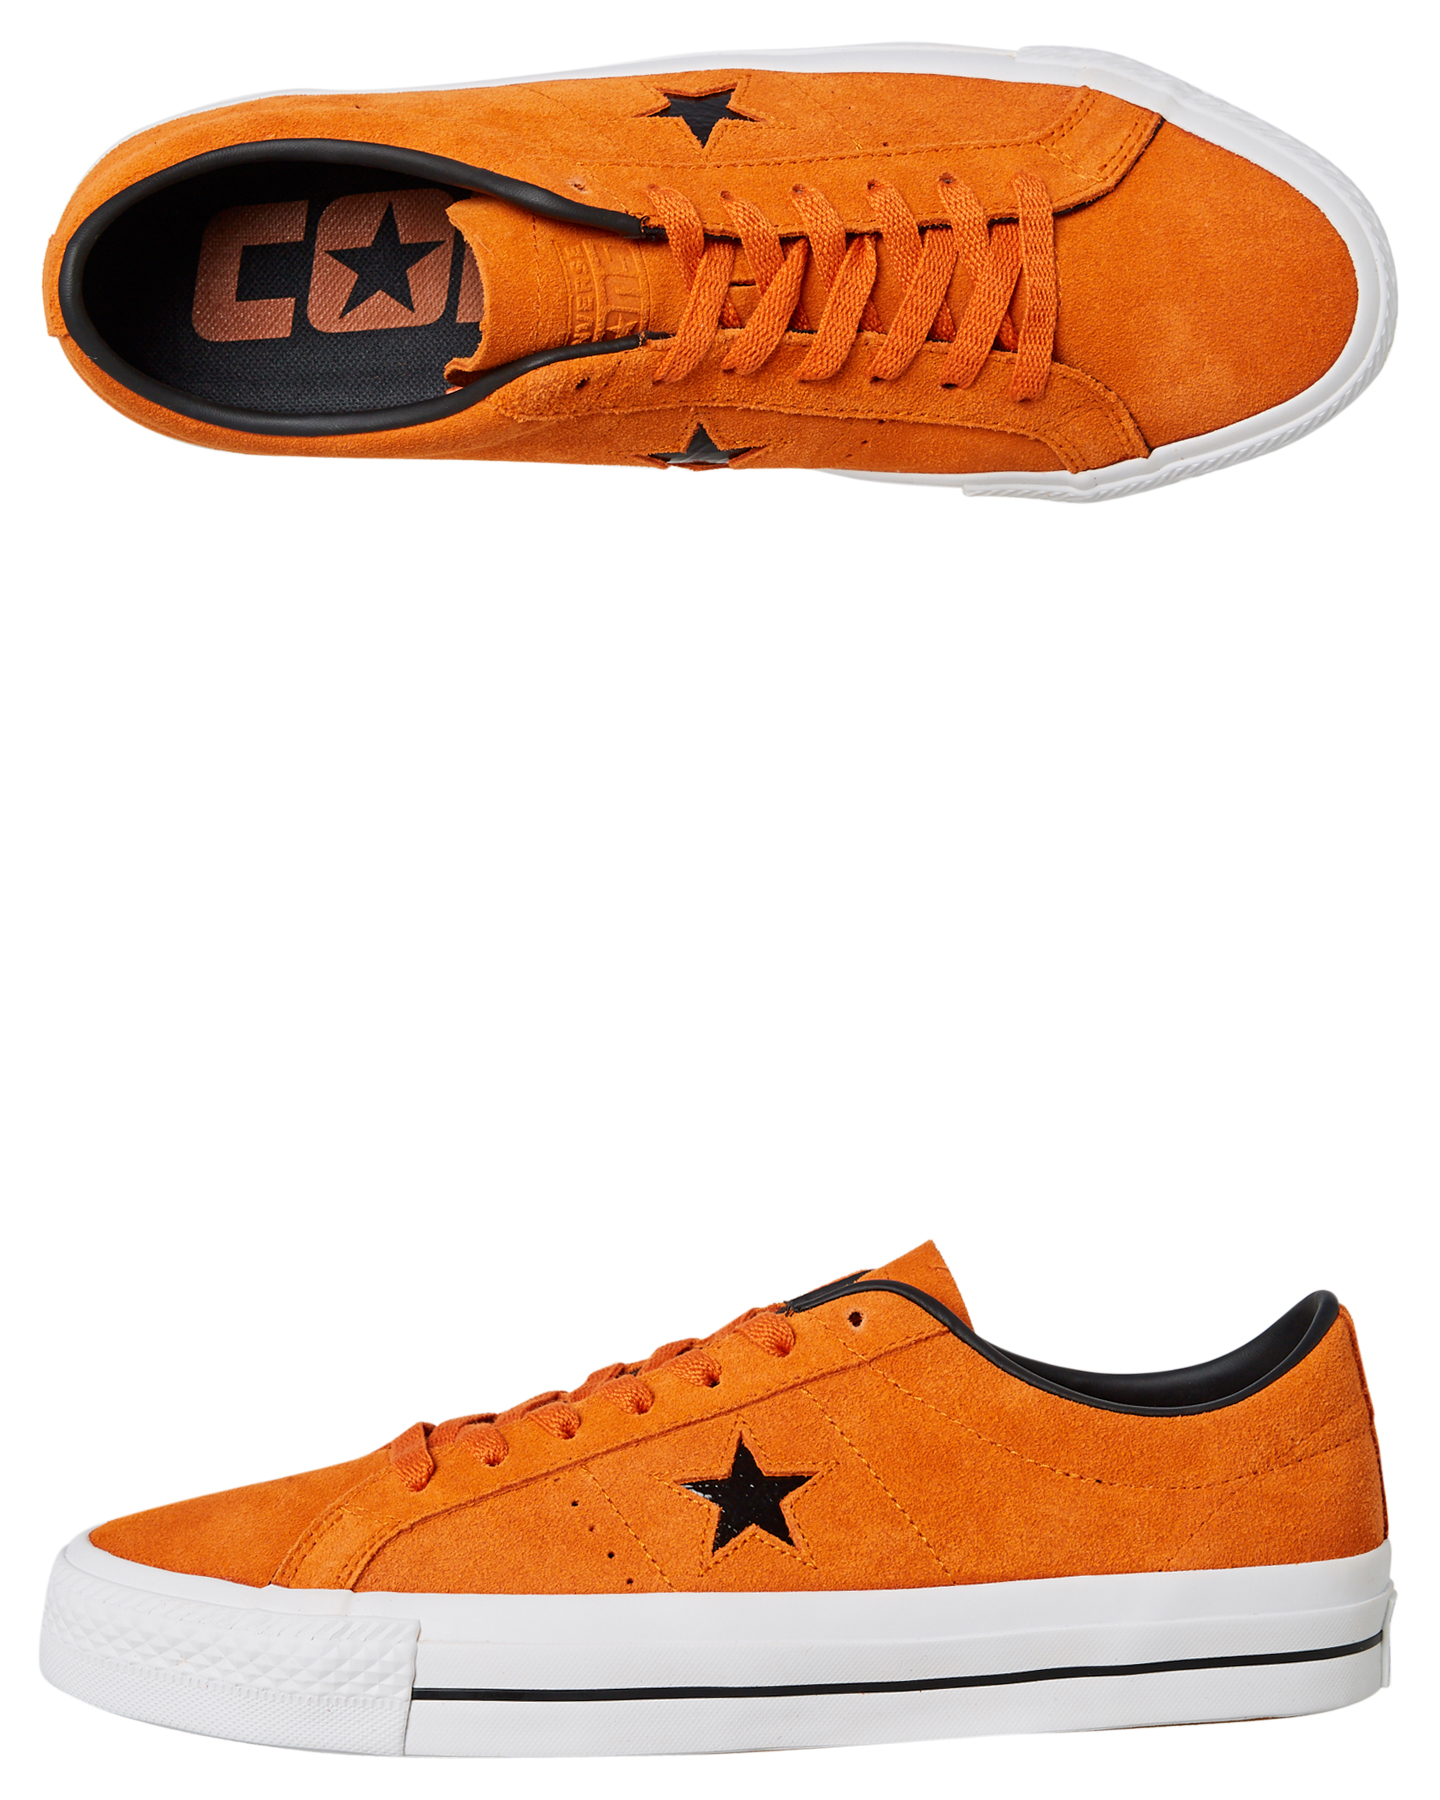 Converse Men's One Star Suede Sneakers